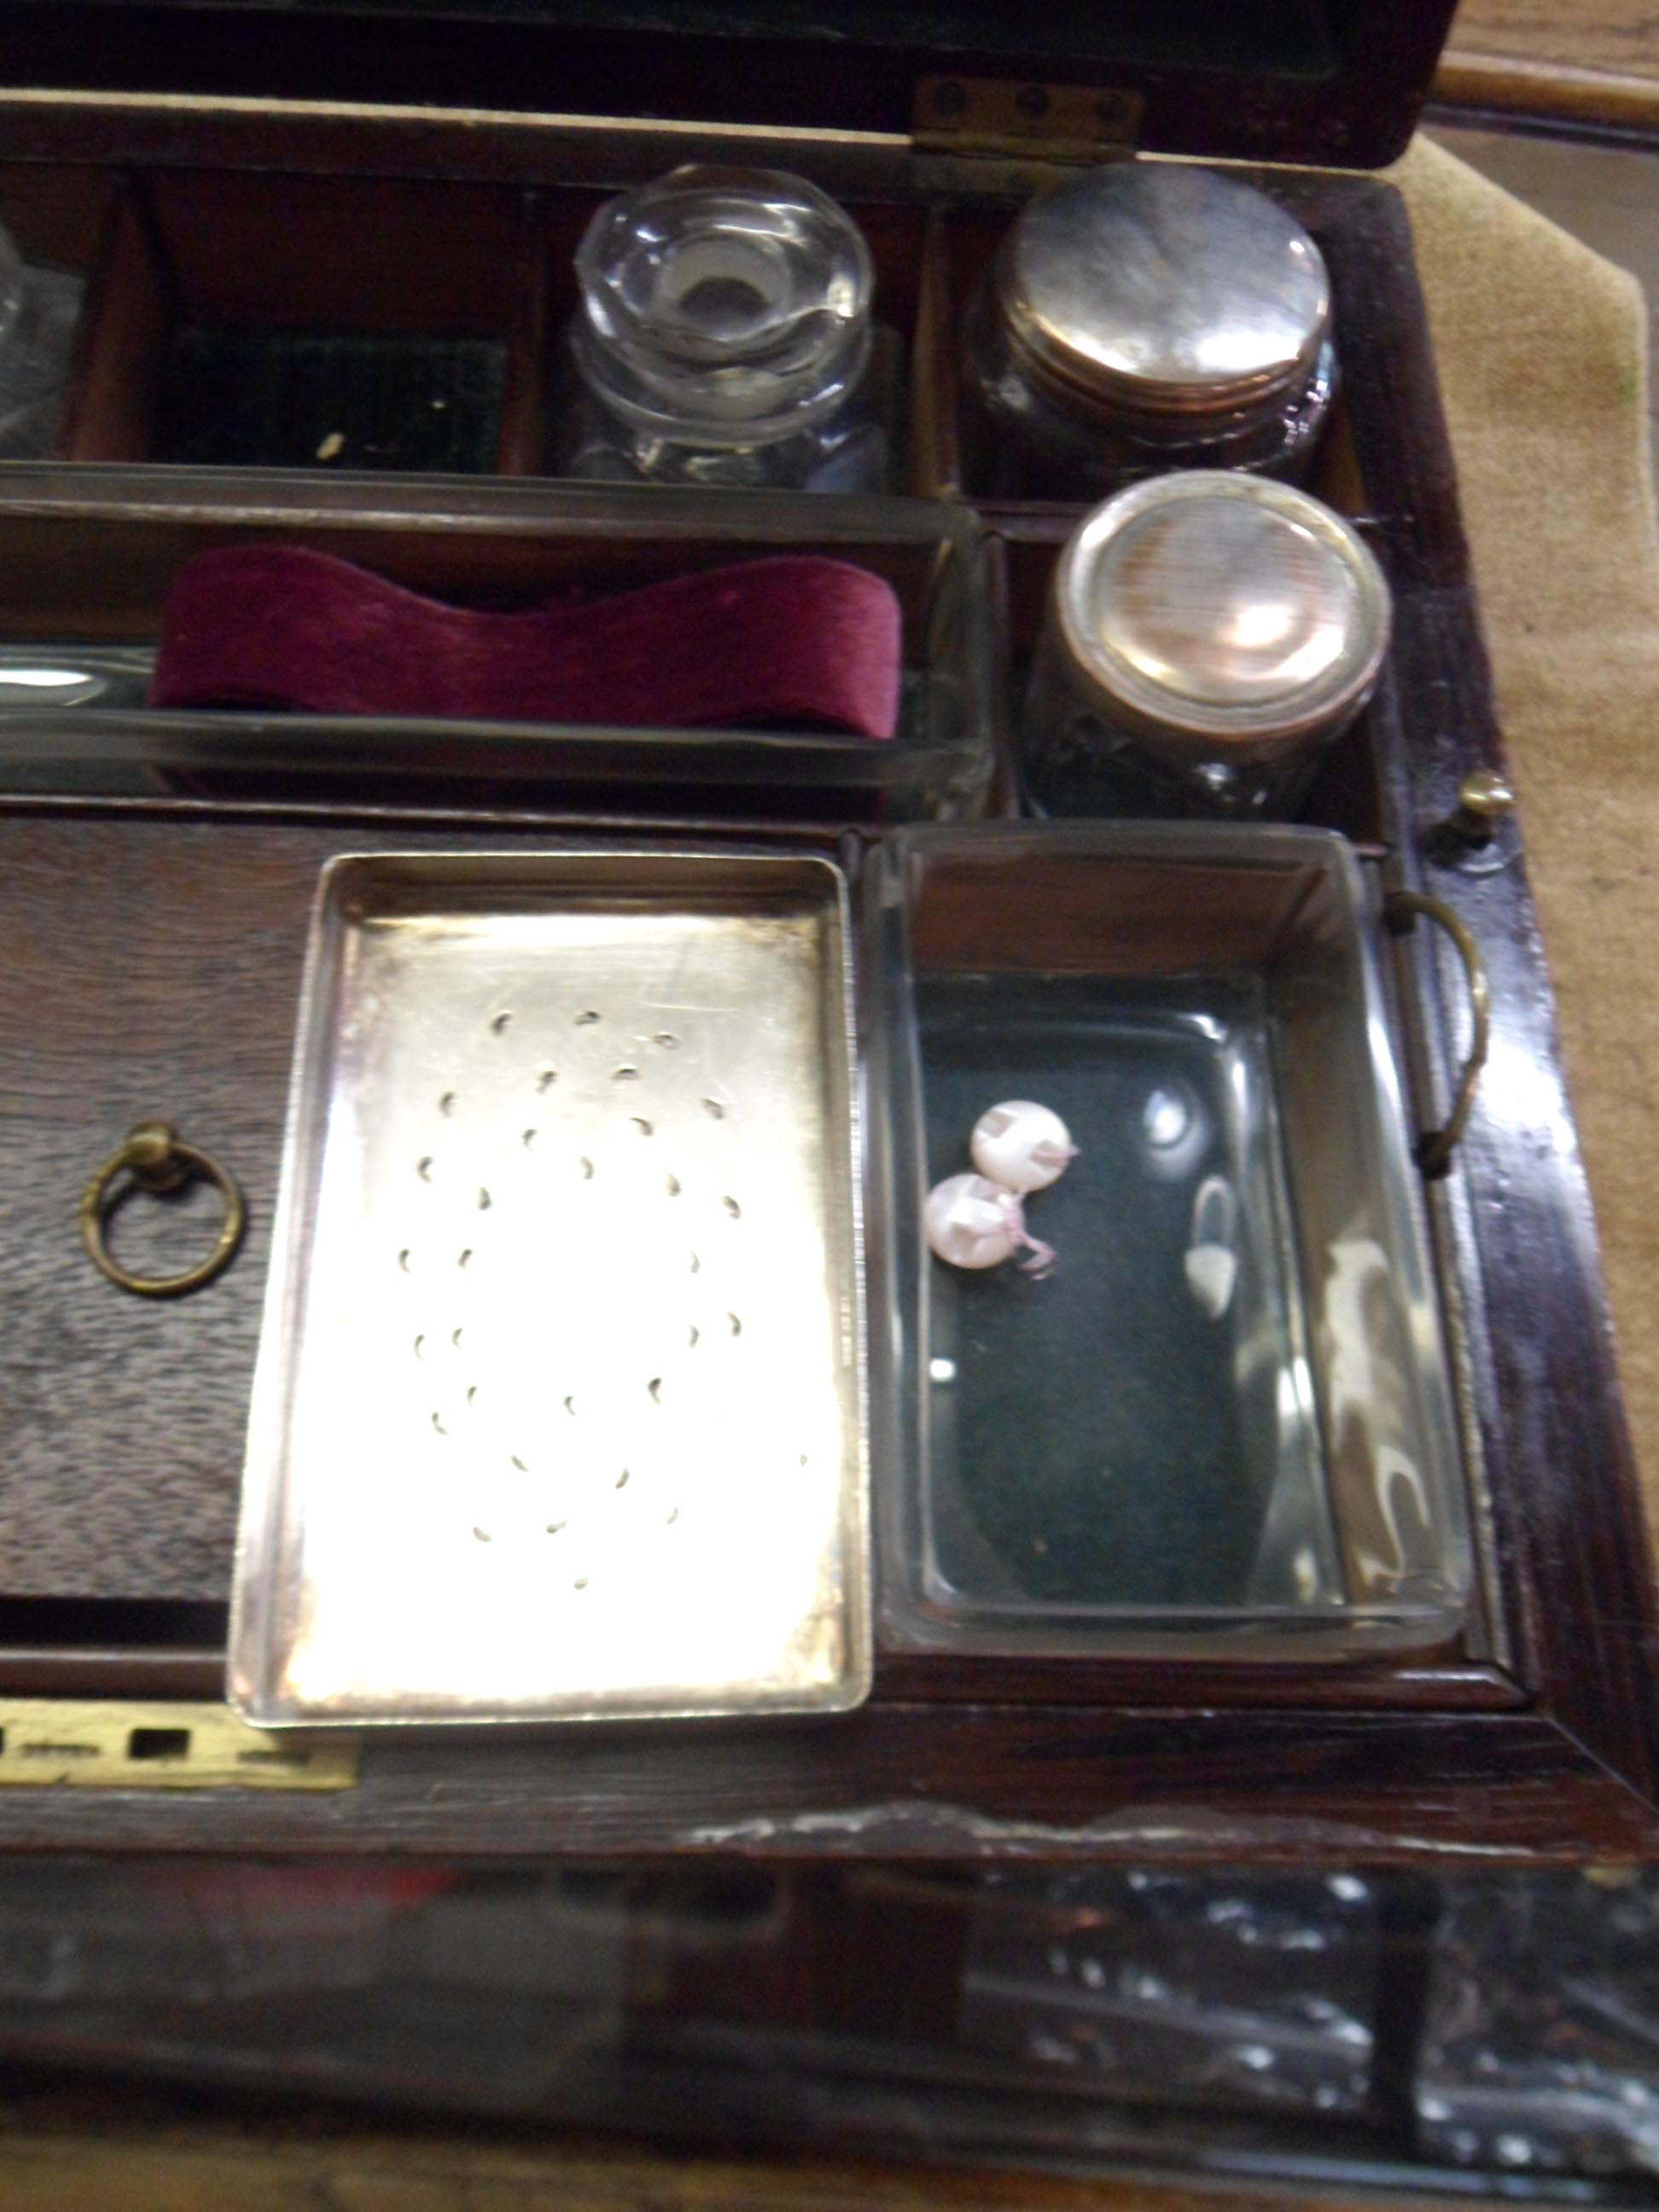 A Victorian rosewood veneered travelling vanity box, the interior fitted with glass jars and boxes - Image 4 of 5